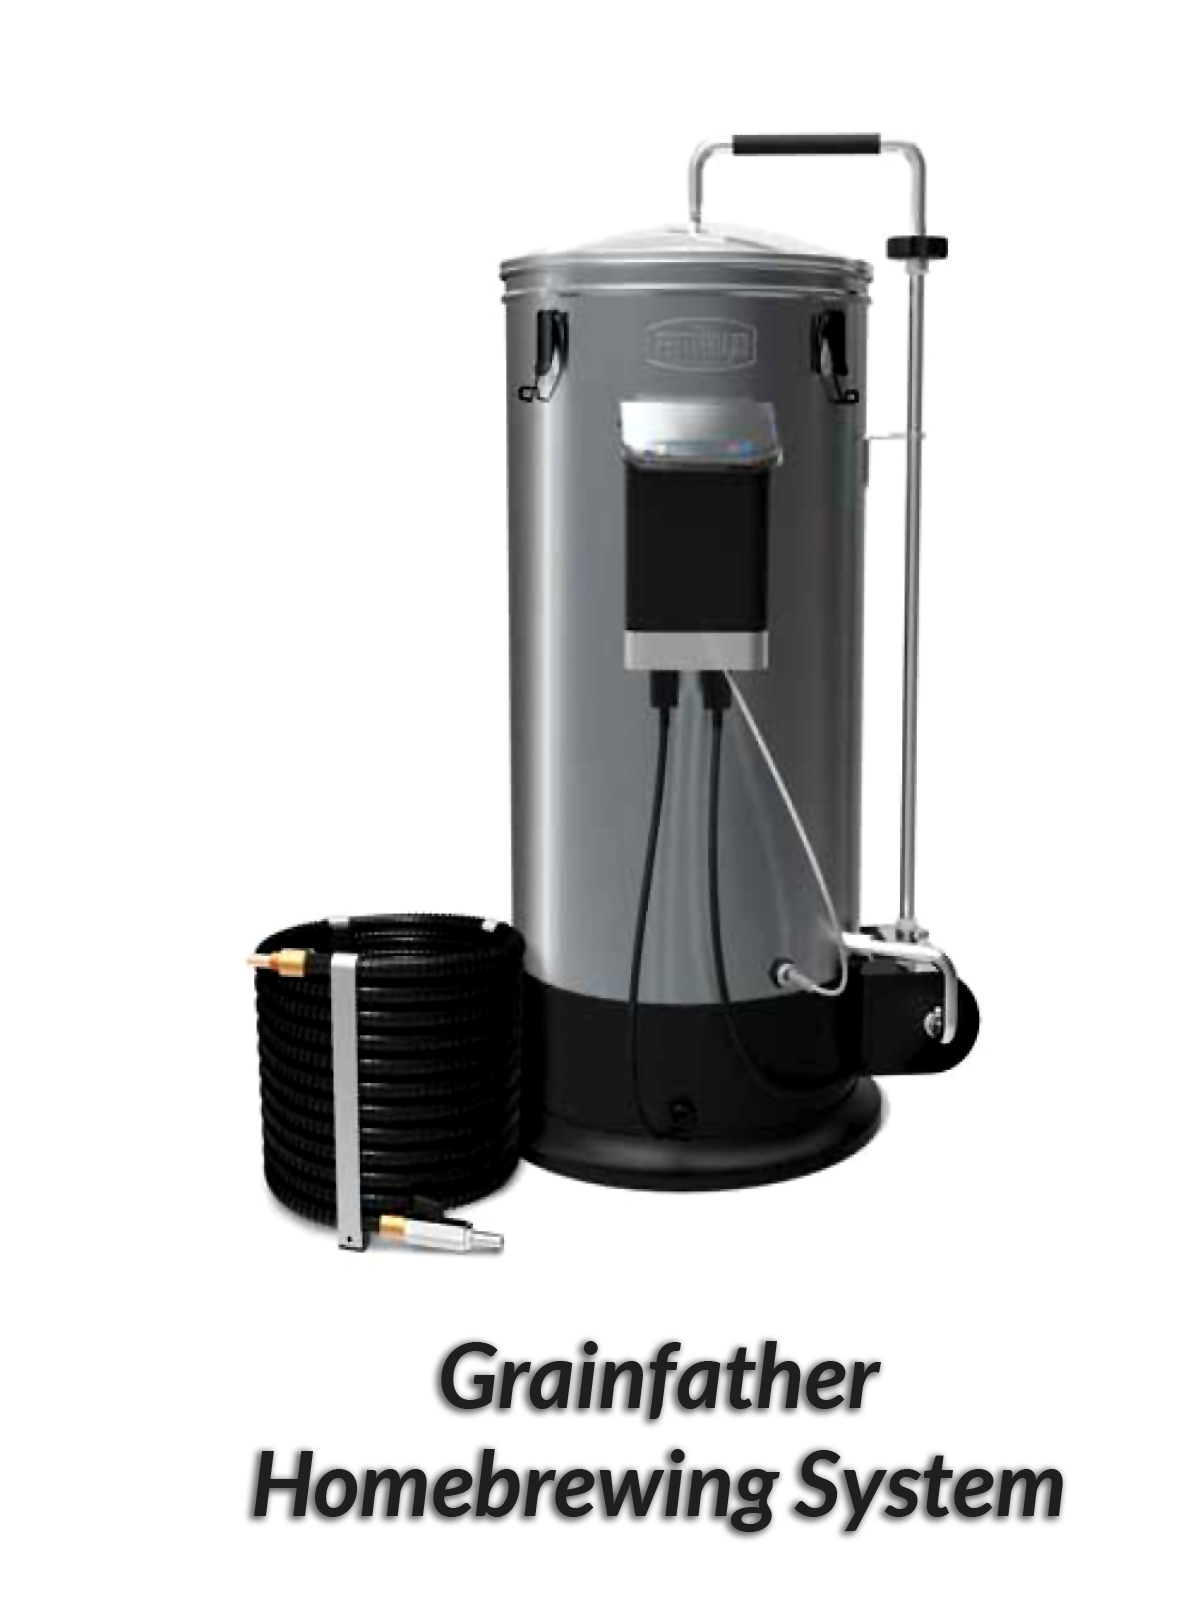 Grain Father Homebrewing Rig